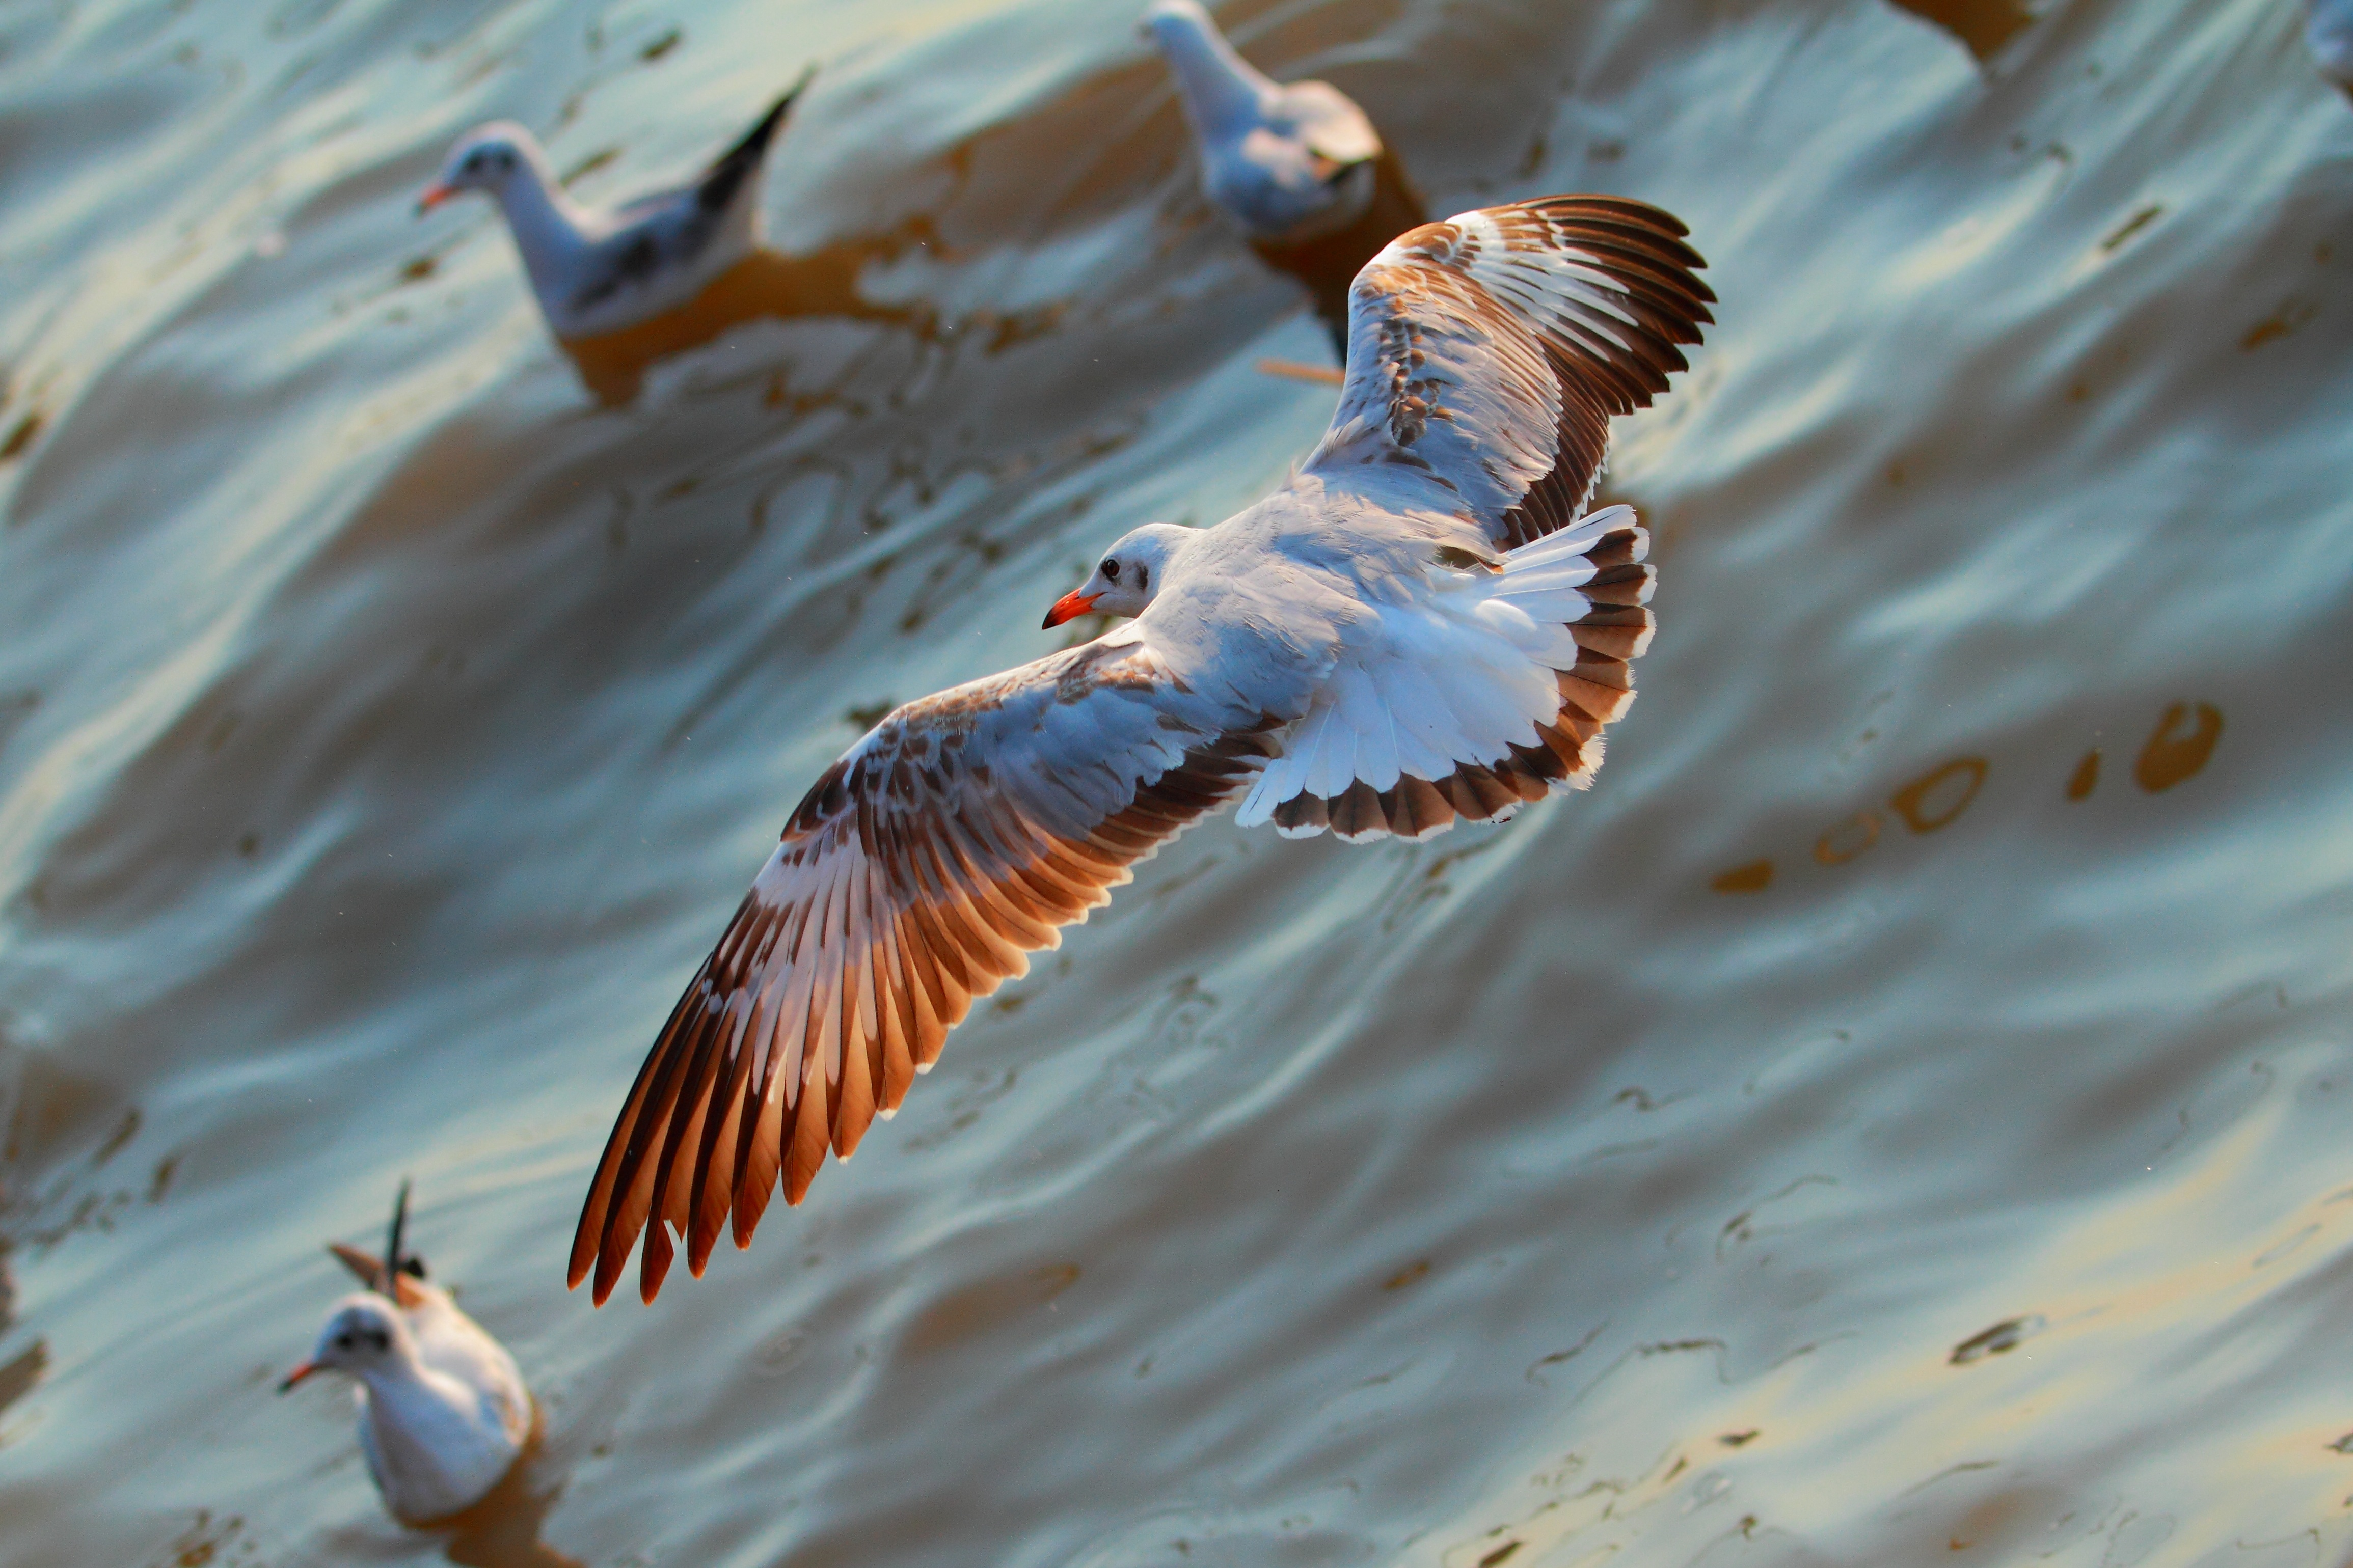 95061 download wallpaper Animals, Flight, Sea, Birds, Seagulls screensavers and pictures for free